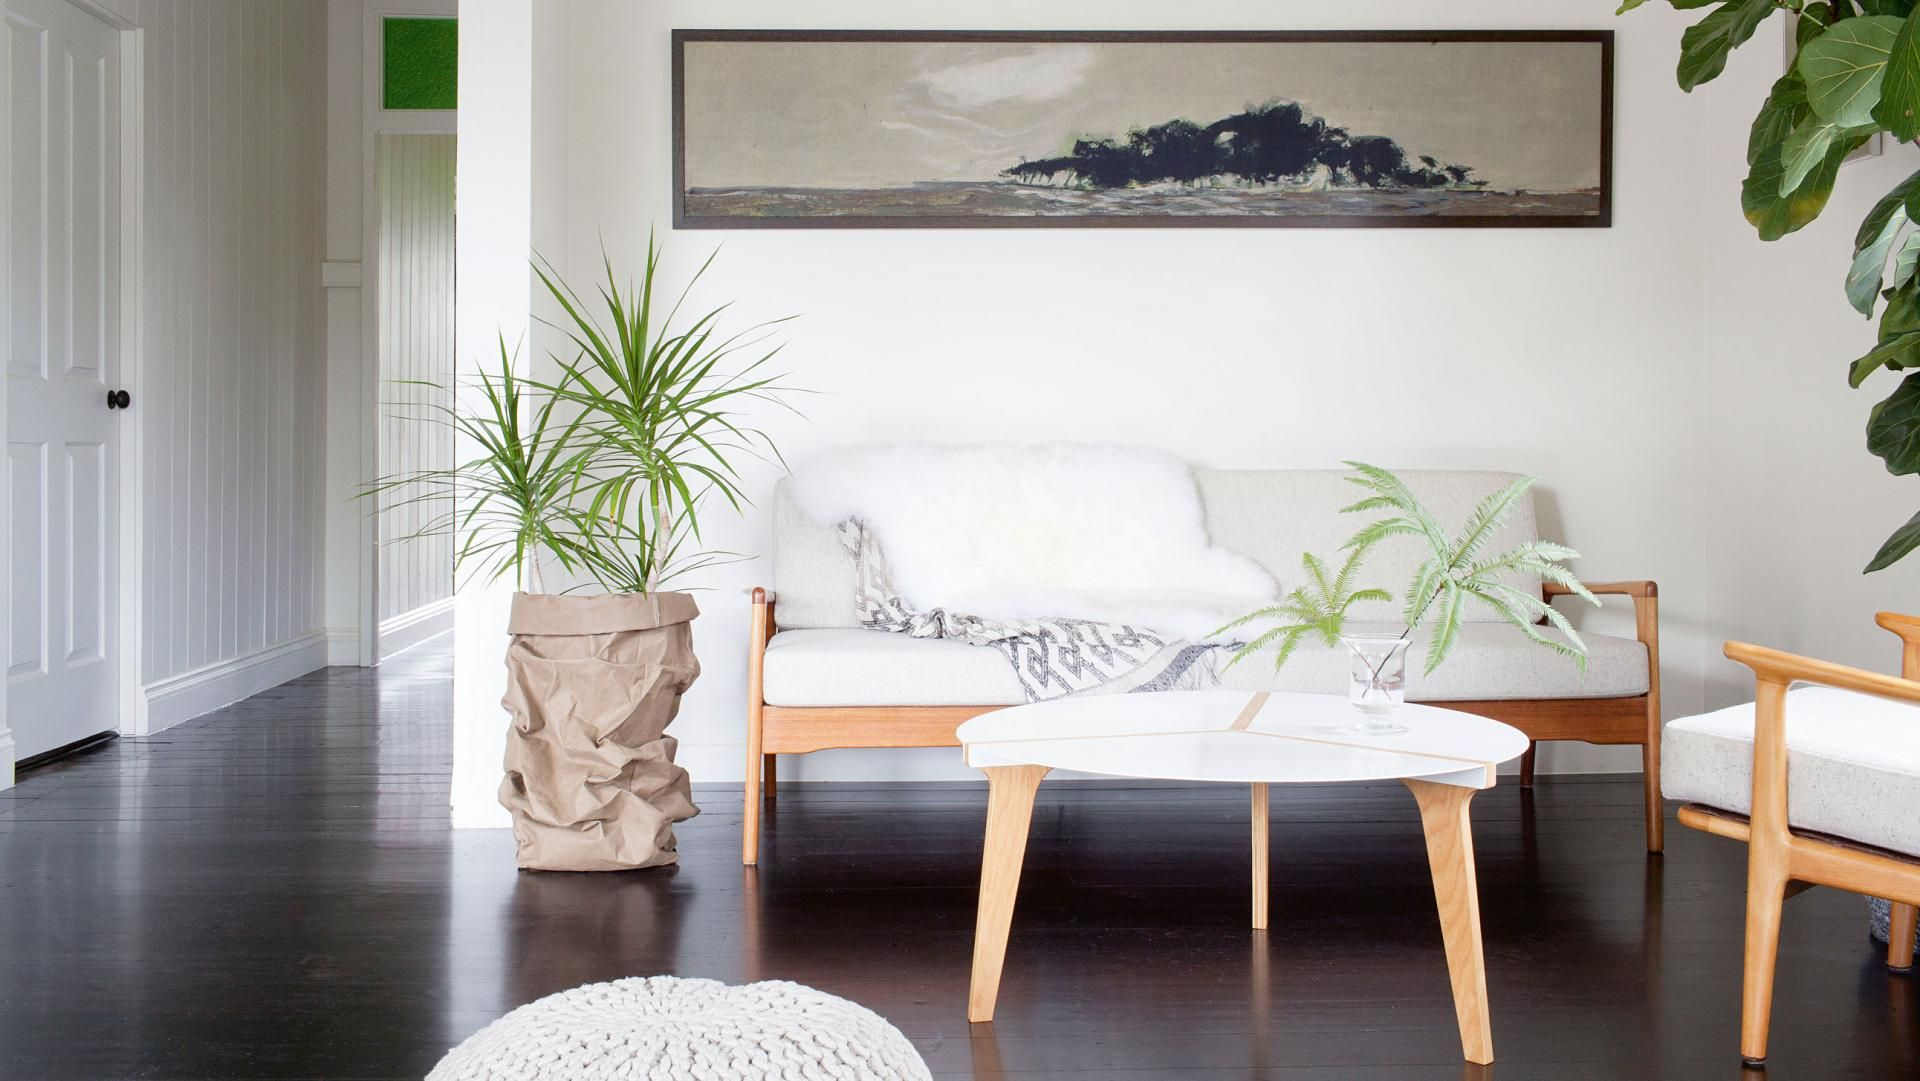 White living room couch coffee table plants dark floorboards white living room couch coffee table plants dark floorboards kaytar home feb15 geotapseo Gallery